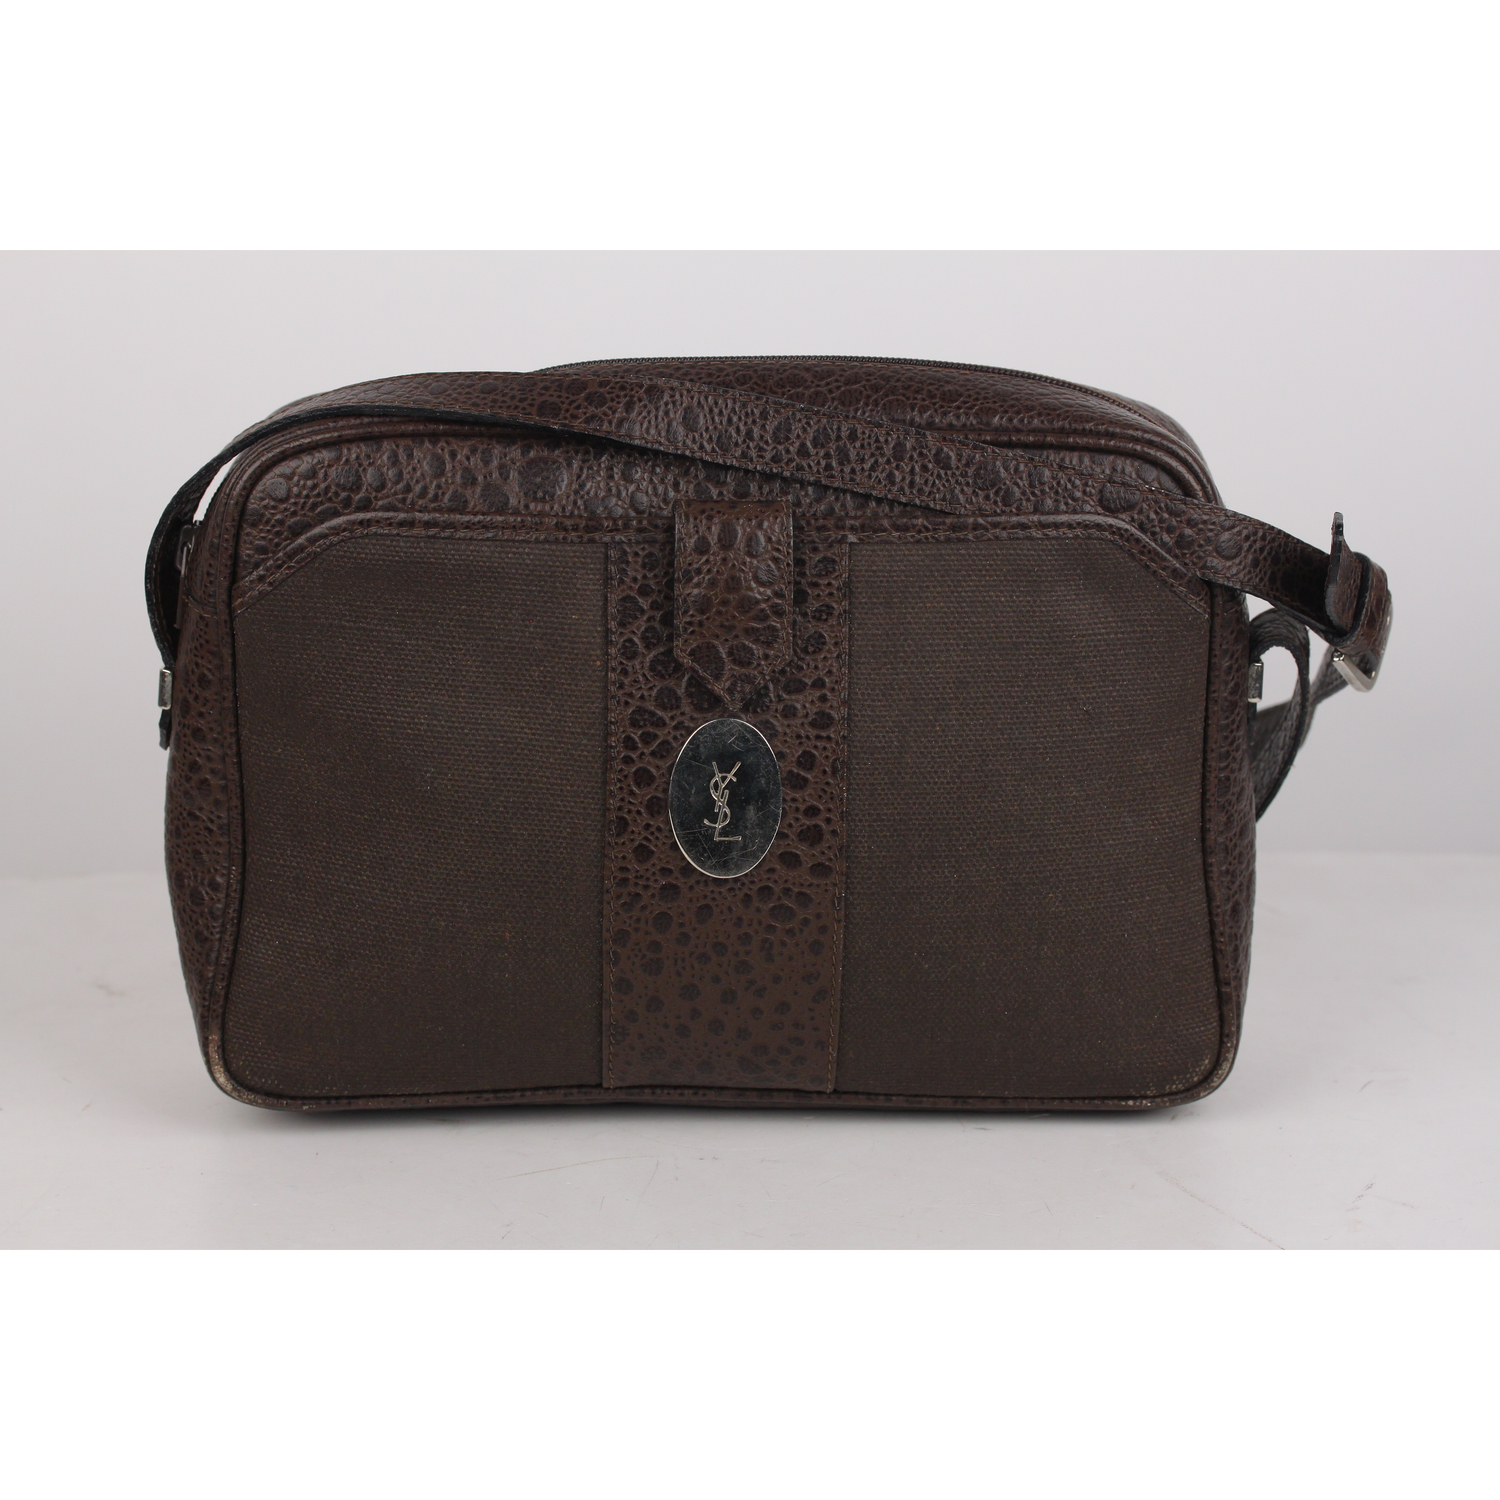 Authentic Yves Saint Laurent Vintage Brown Canvas and Leather Messenger Bag beac64a8a9410